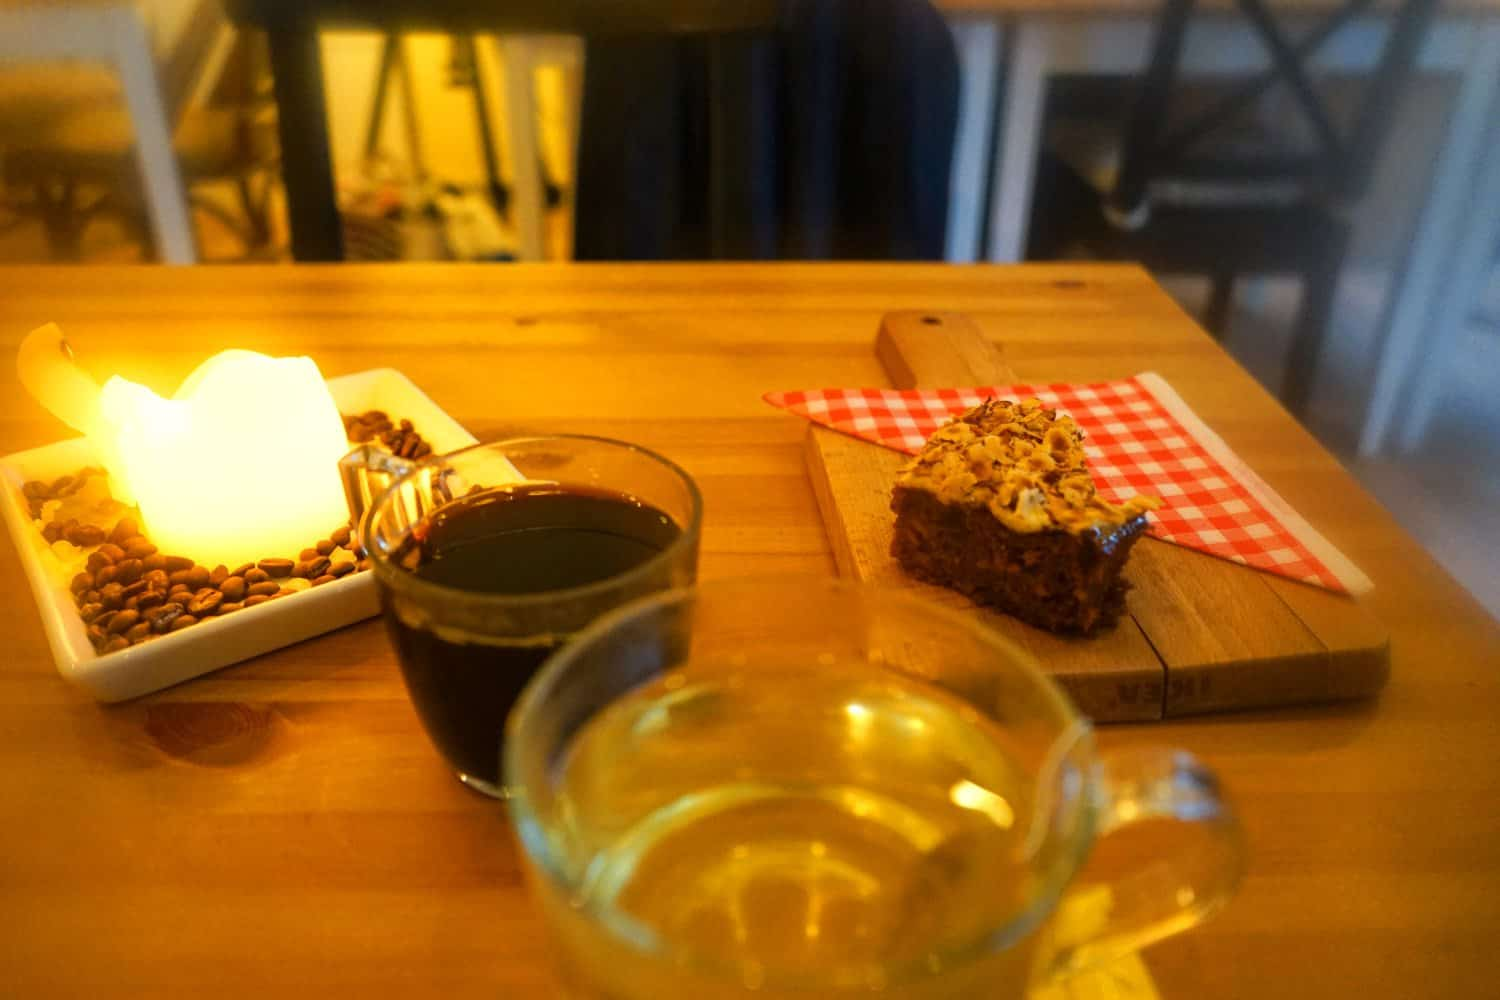 Coffee and cake in a Copenhagen cafe